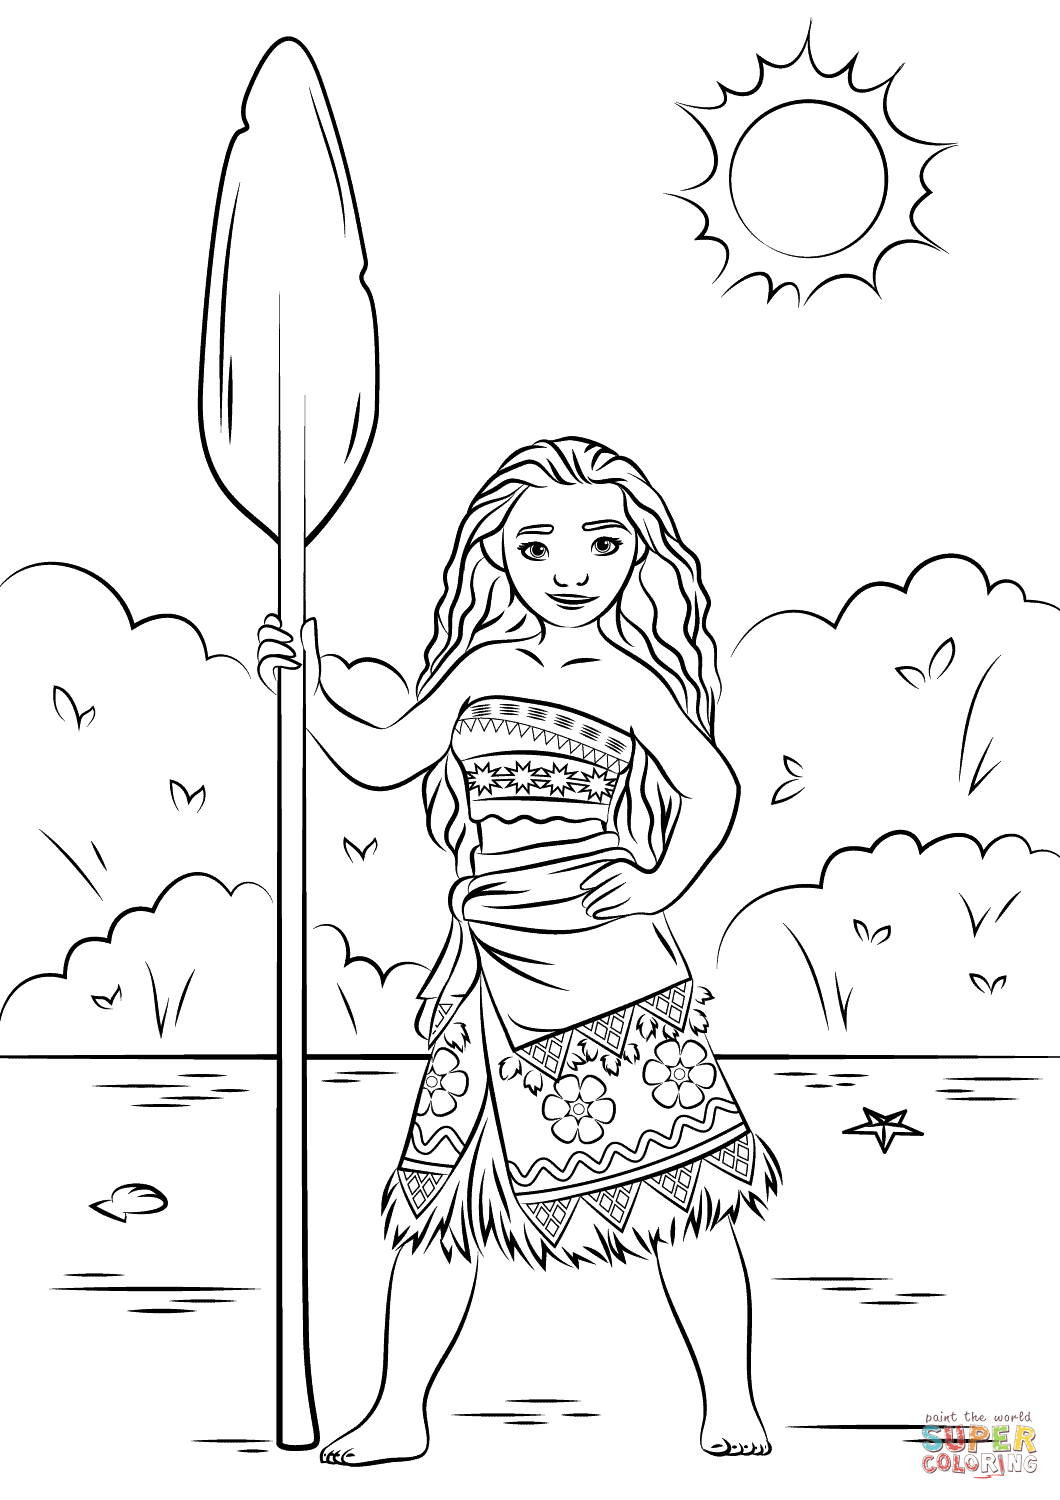 Princess Moana Super Coloring moana Pinterest